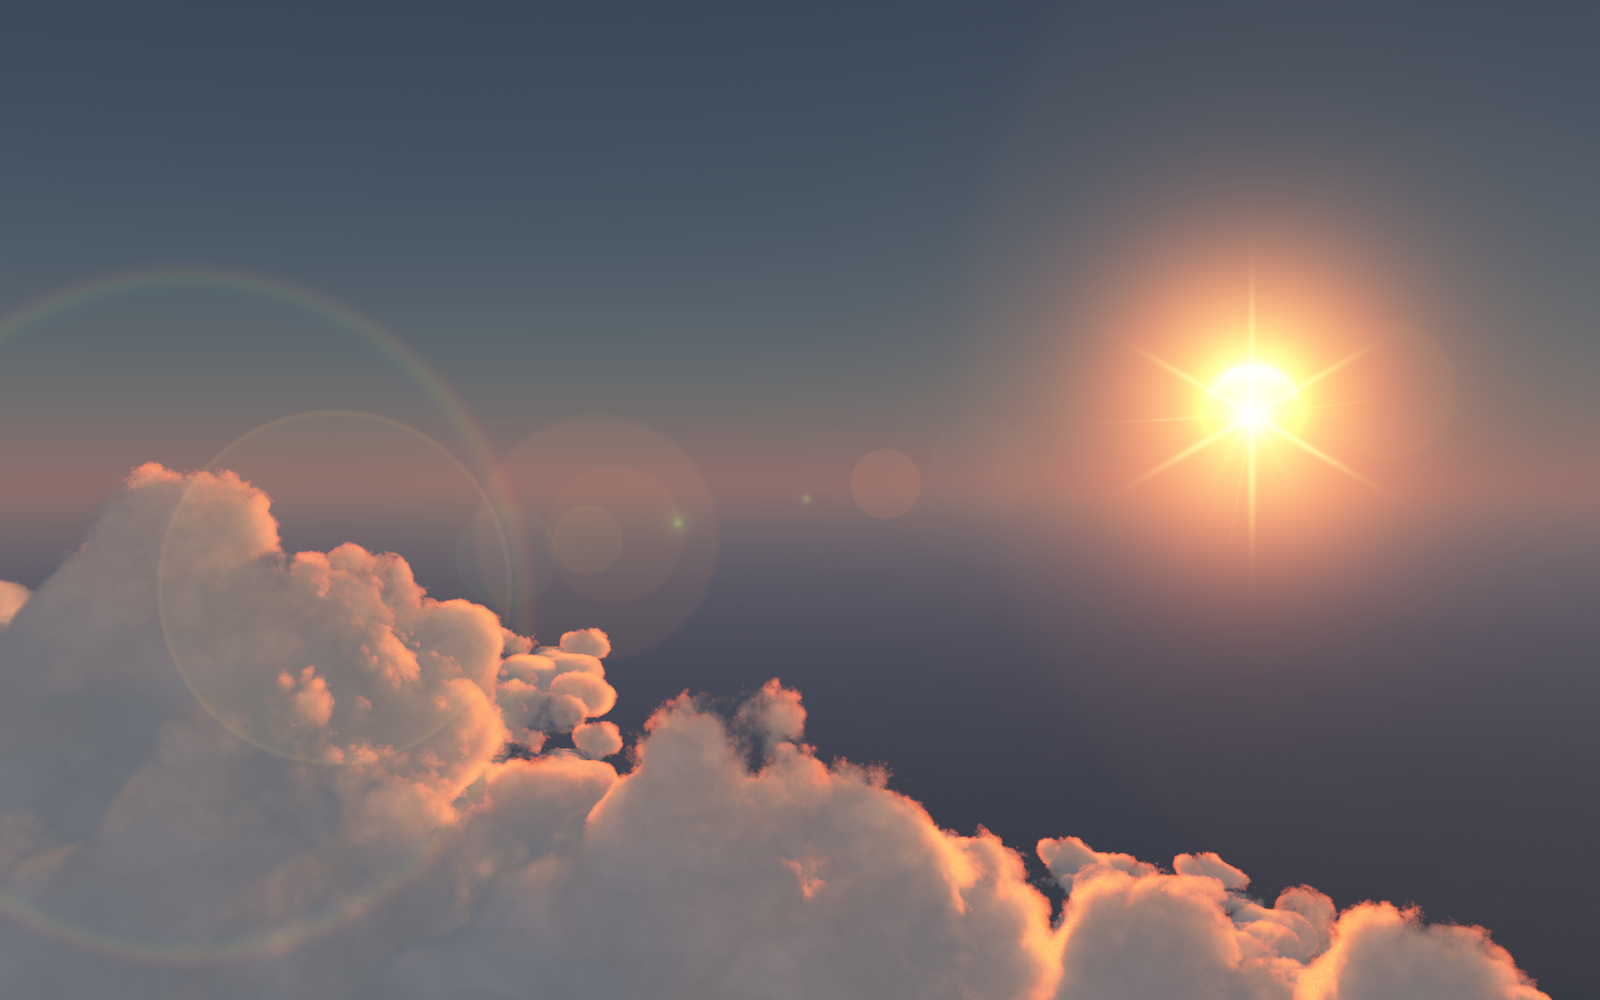 Sunrise above a lonely cloud